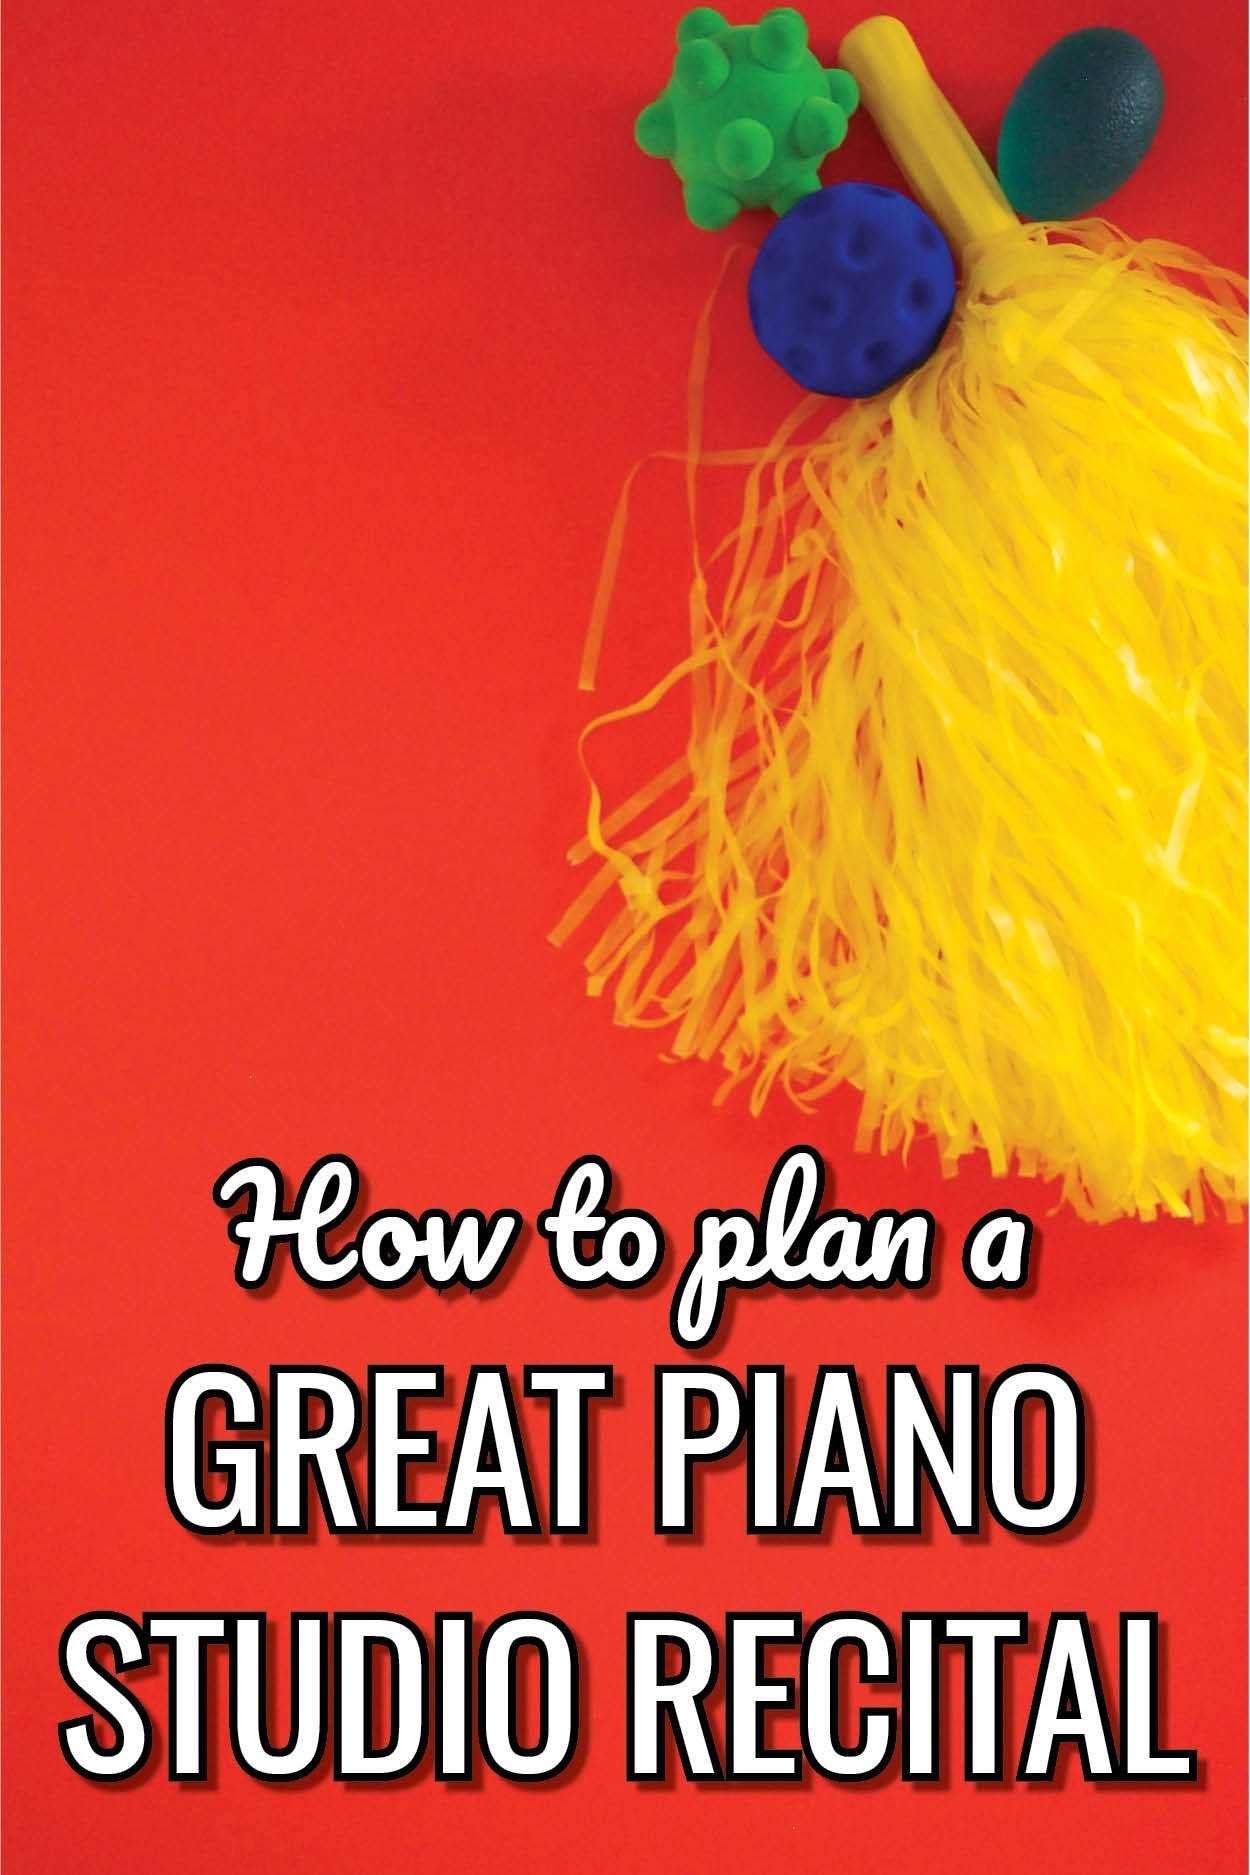 How to plan and host an amazing recital